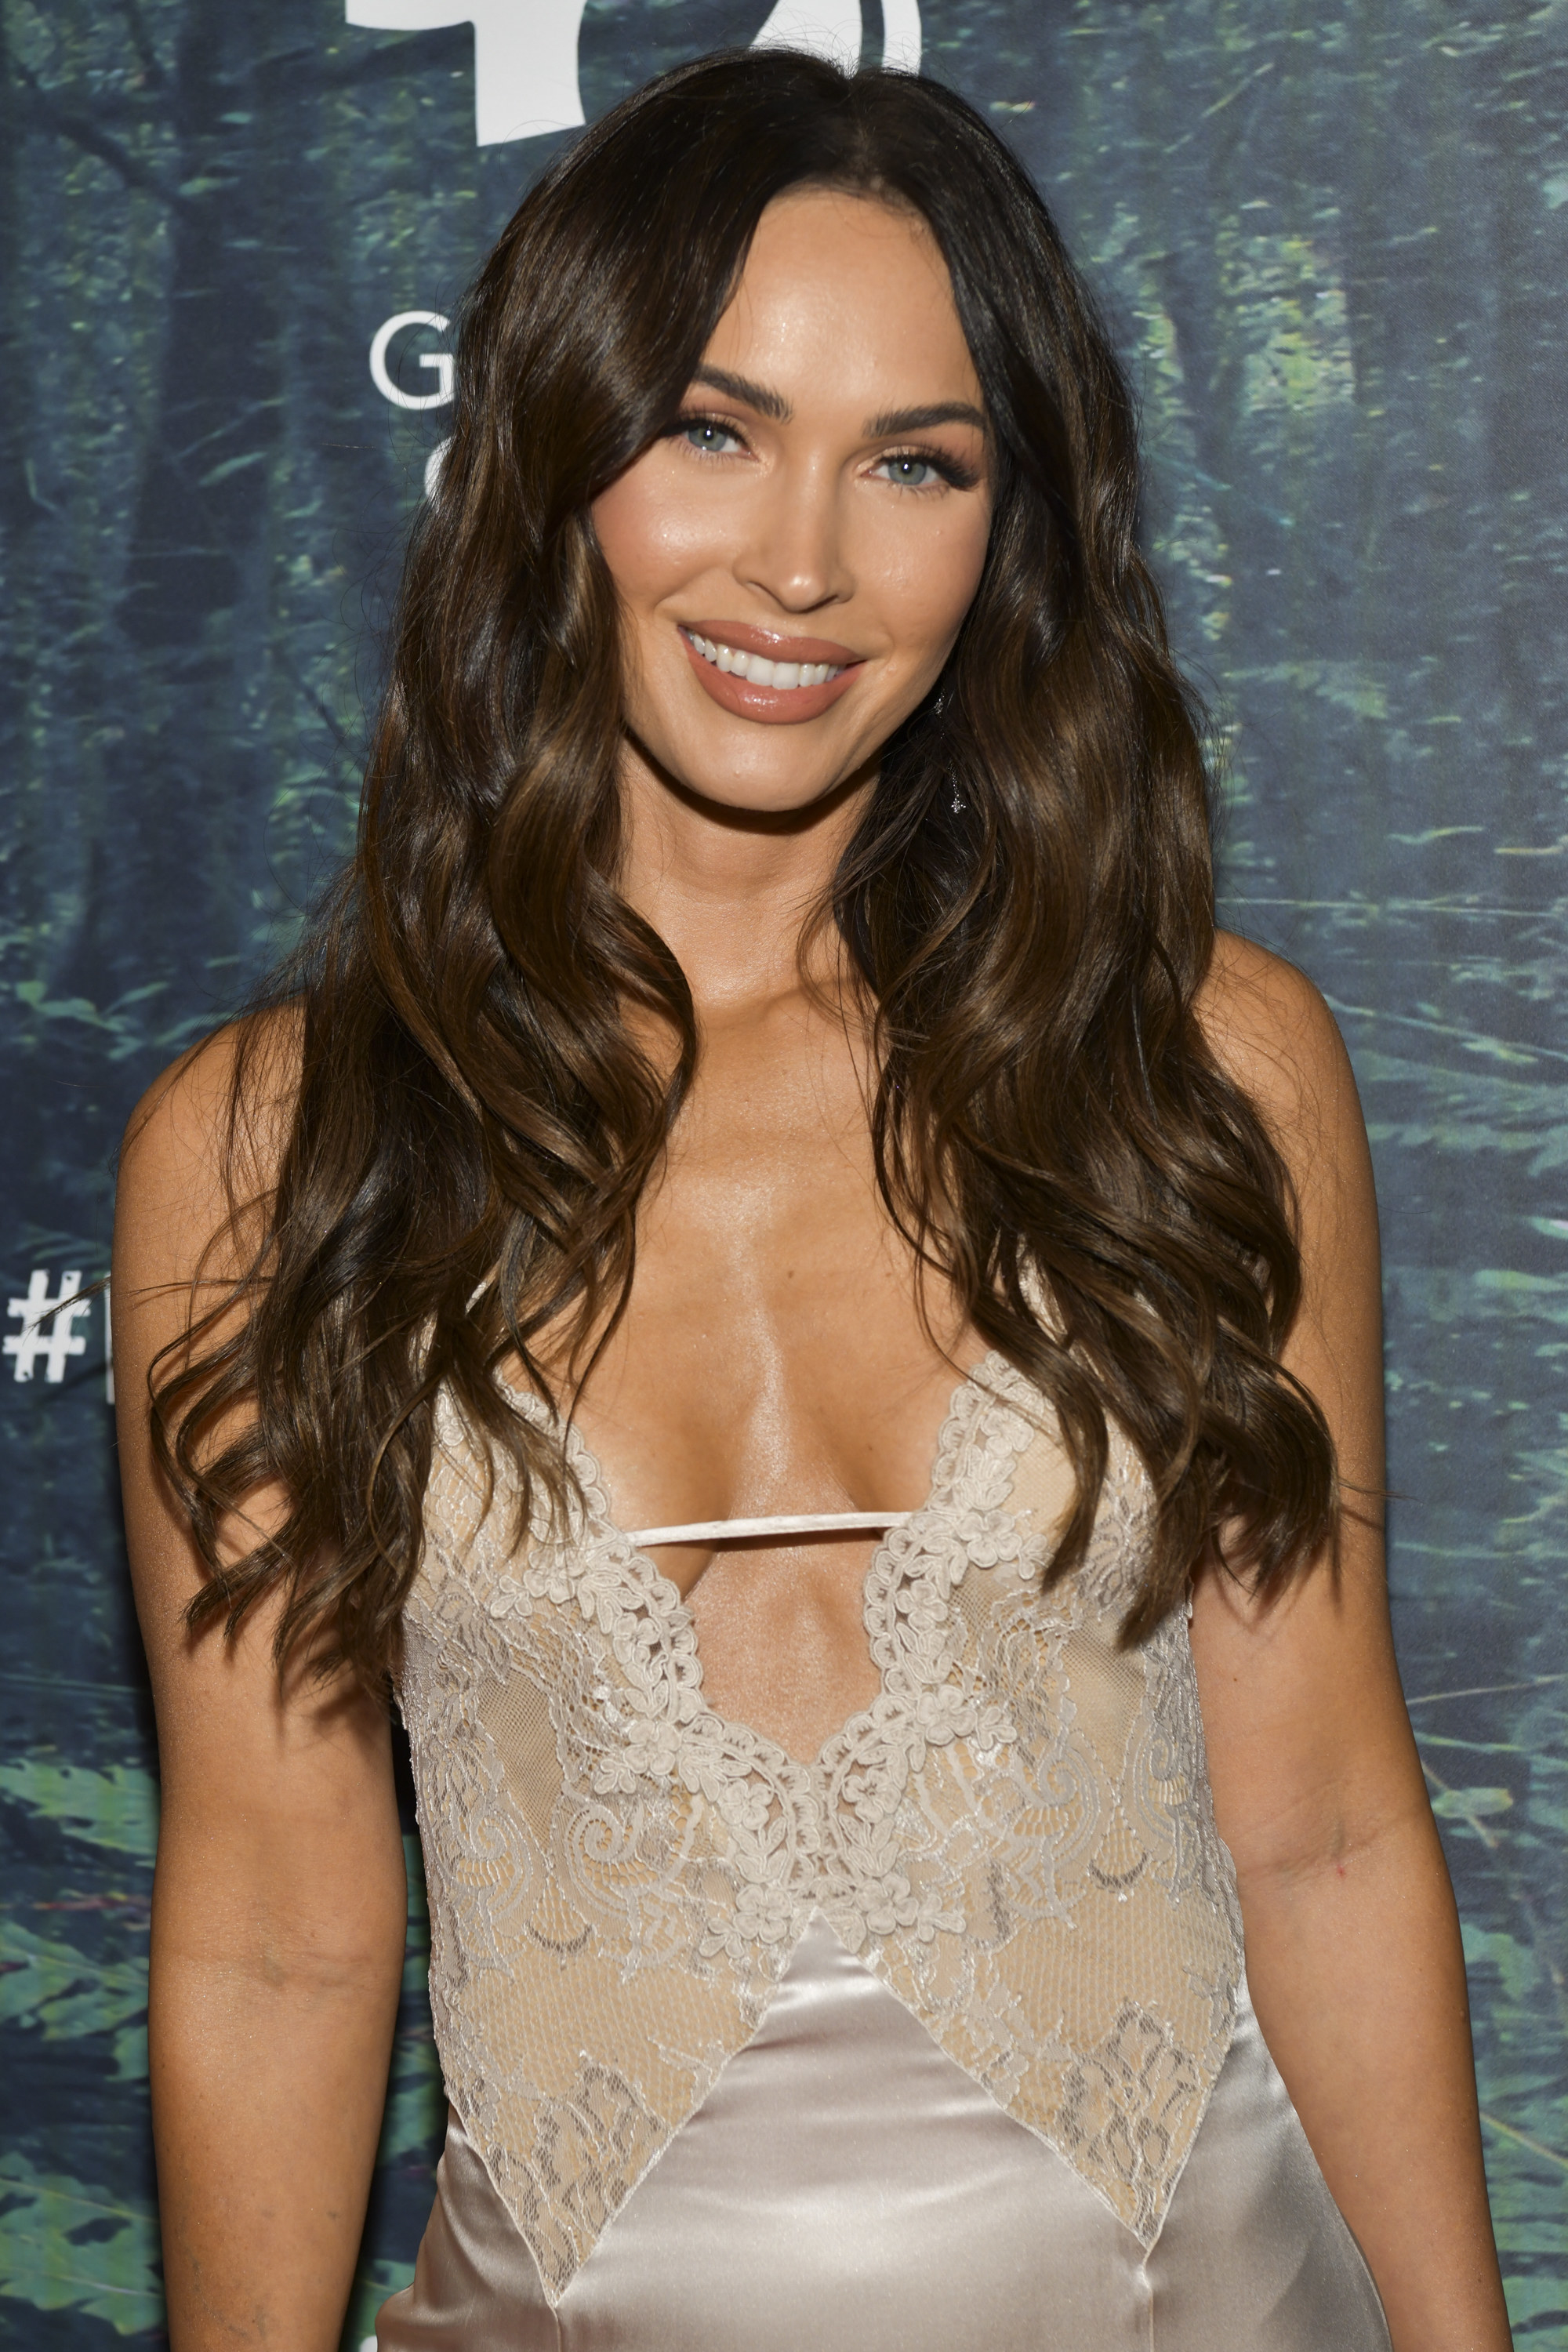 Photo of Megan Fox in a lace dress at a movie premiere